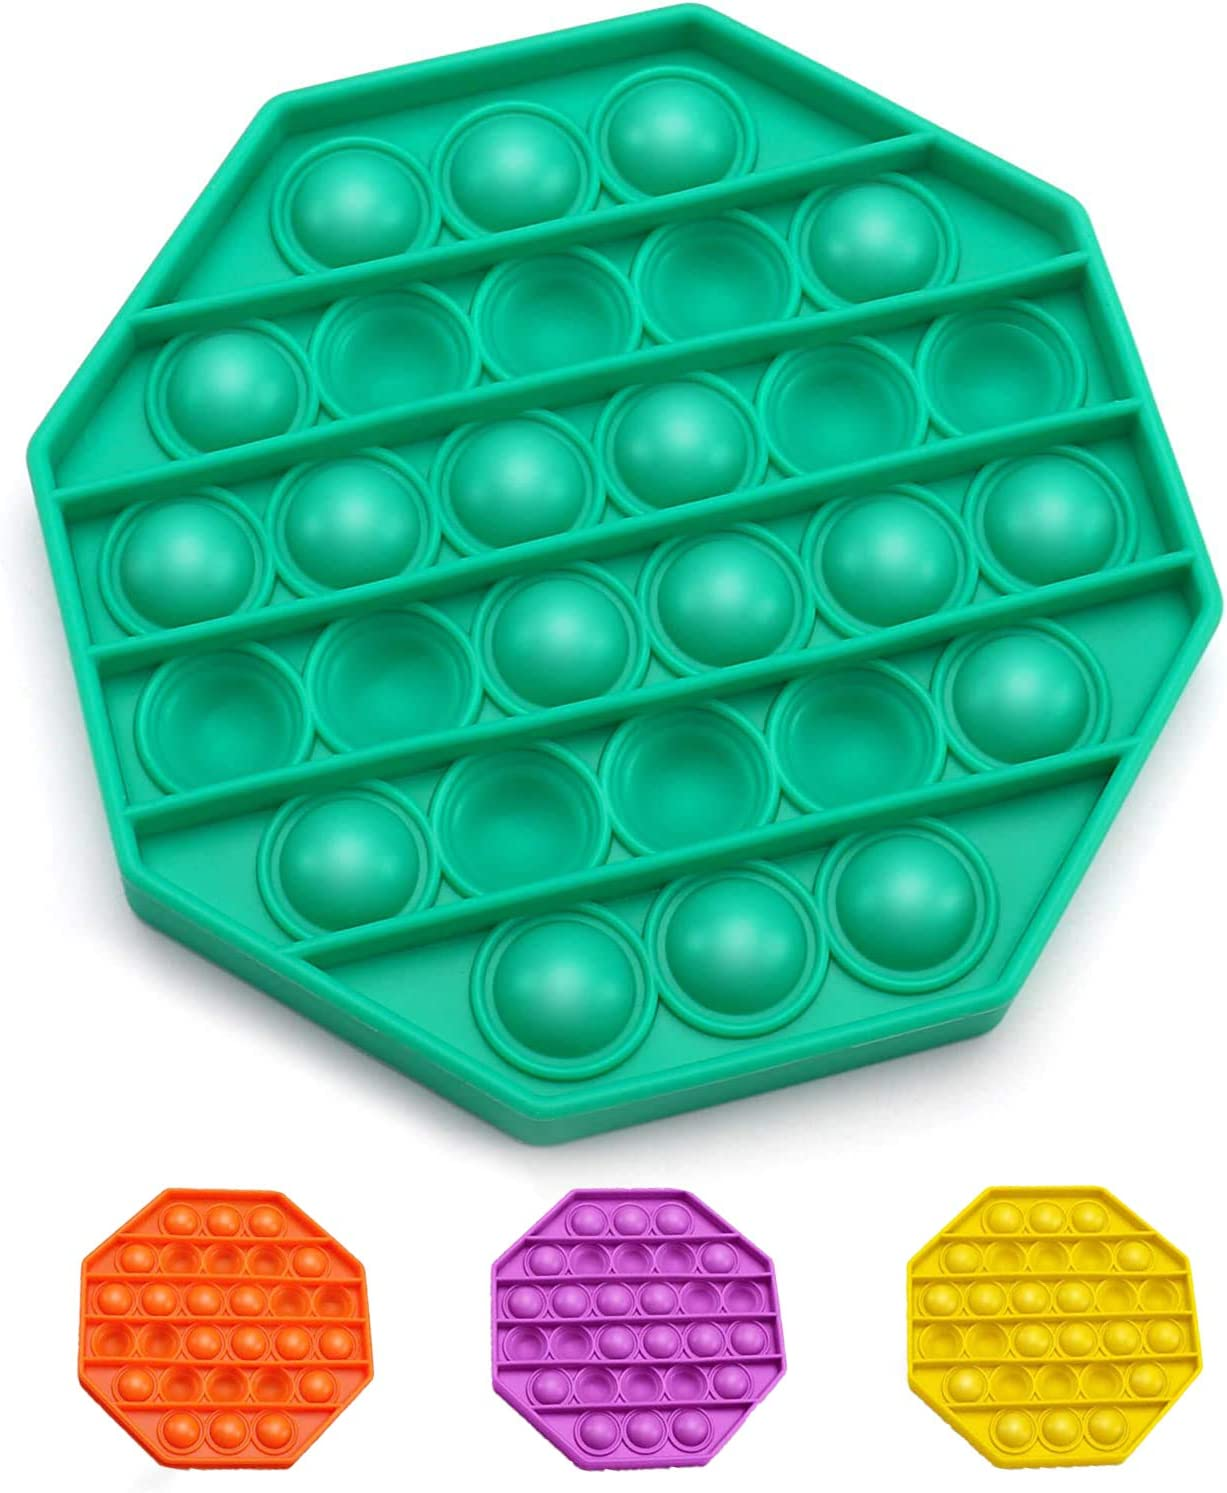 Octagon,Green Push pop pop Bubble Sensory Fidget Toys,Autism Special Needs Stress Reliever Silicone Stress Reliever Toy,Squeeze Sensory Toy for Homeschool /& Office,Good for Kids or Adults